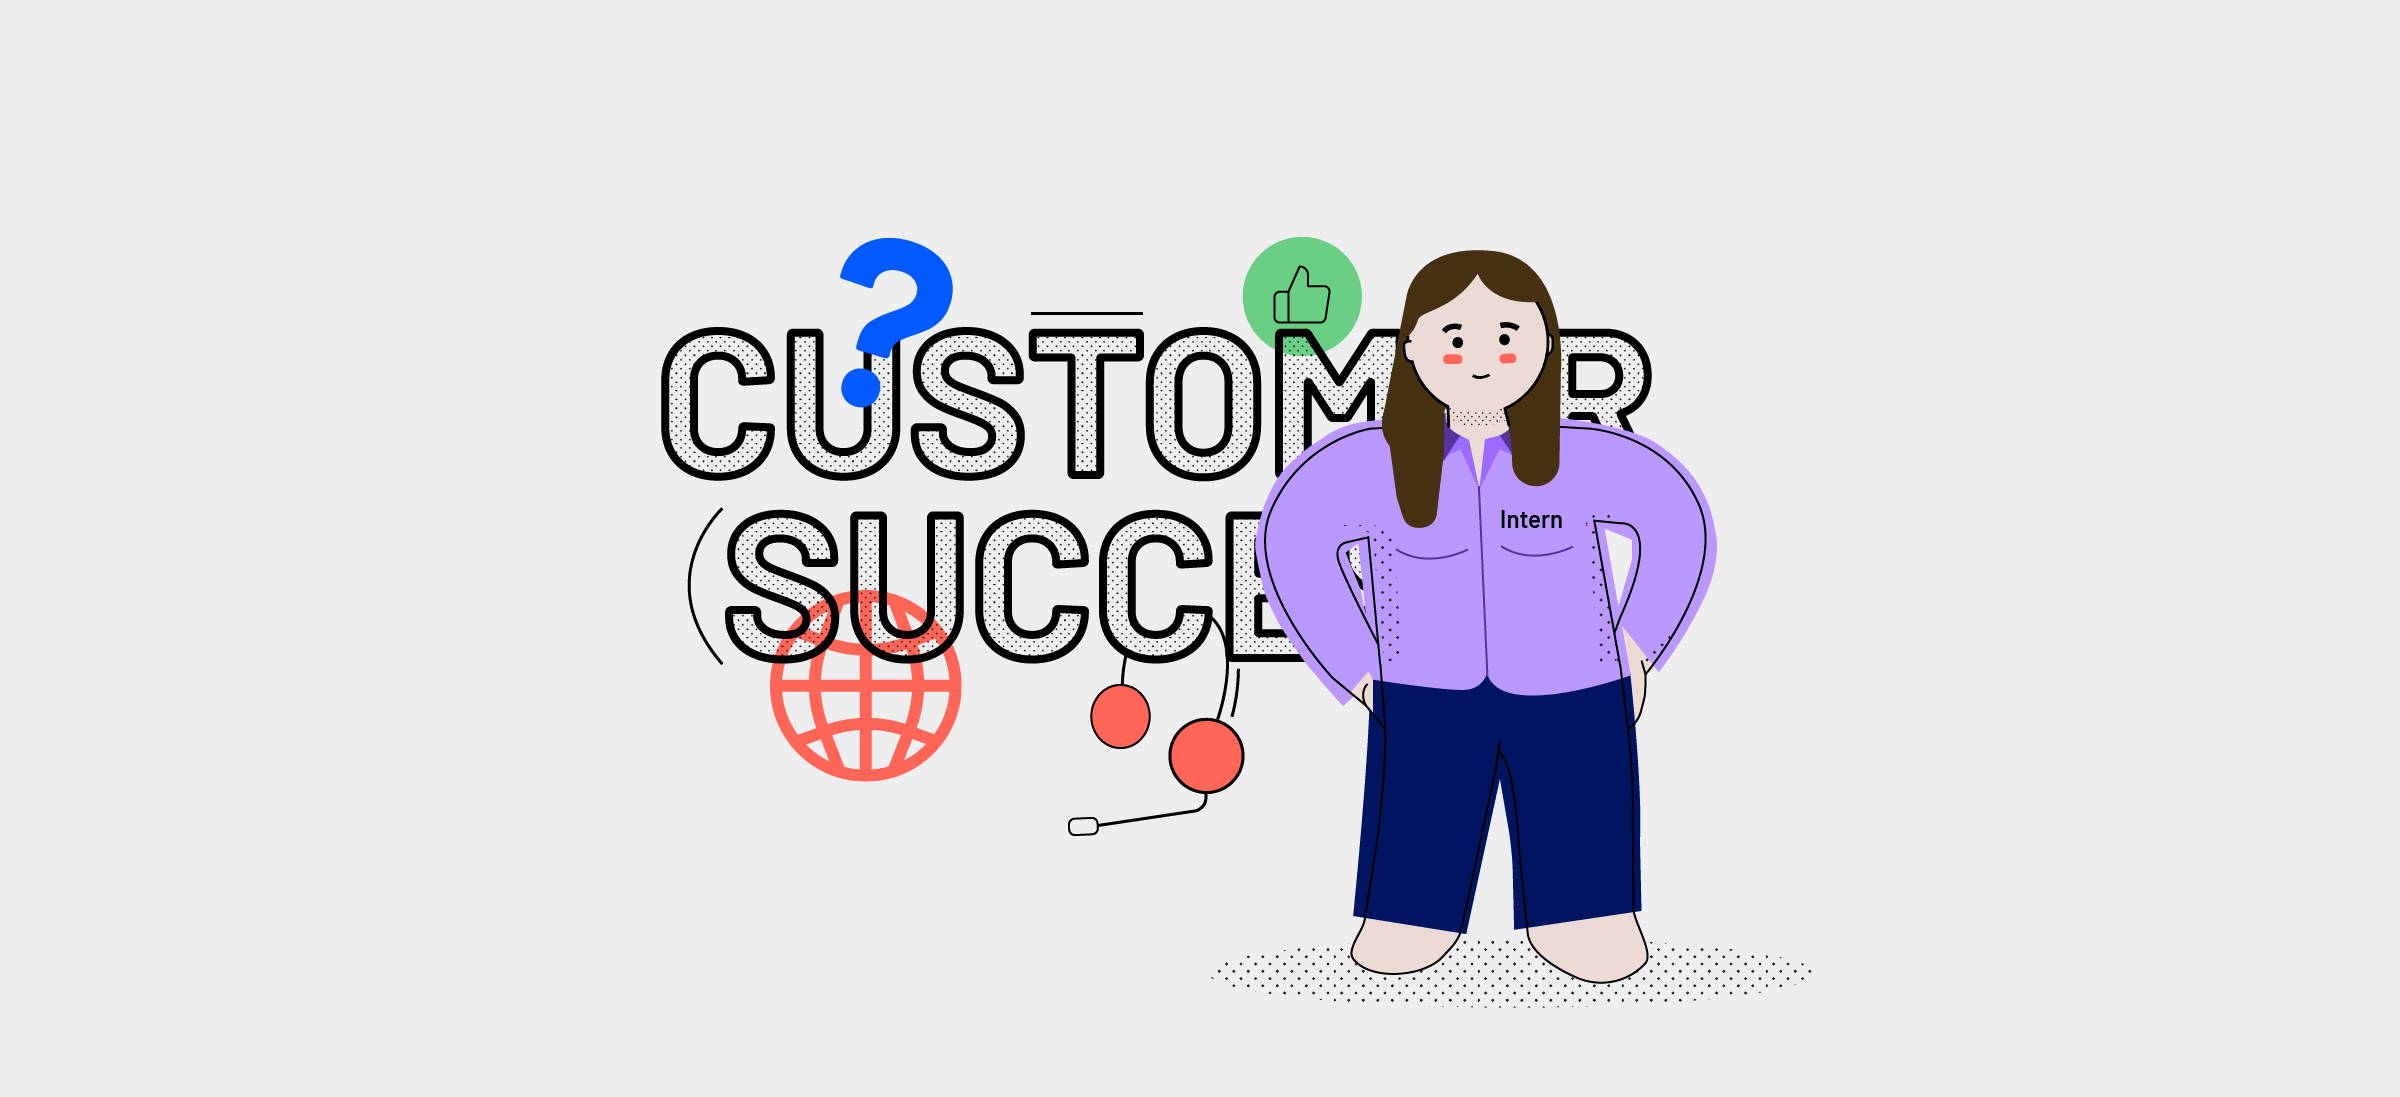 Two months in the life of a Customer Success intern